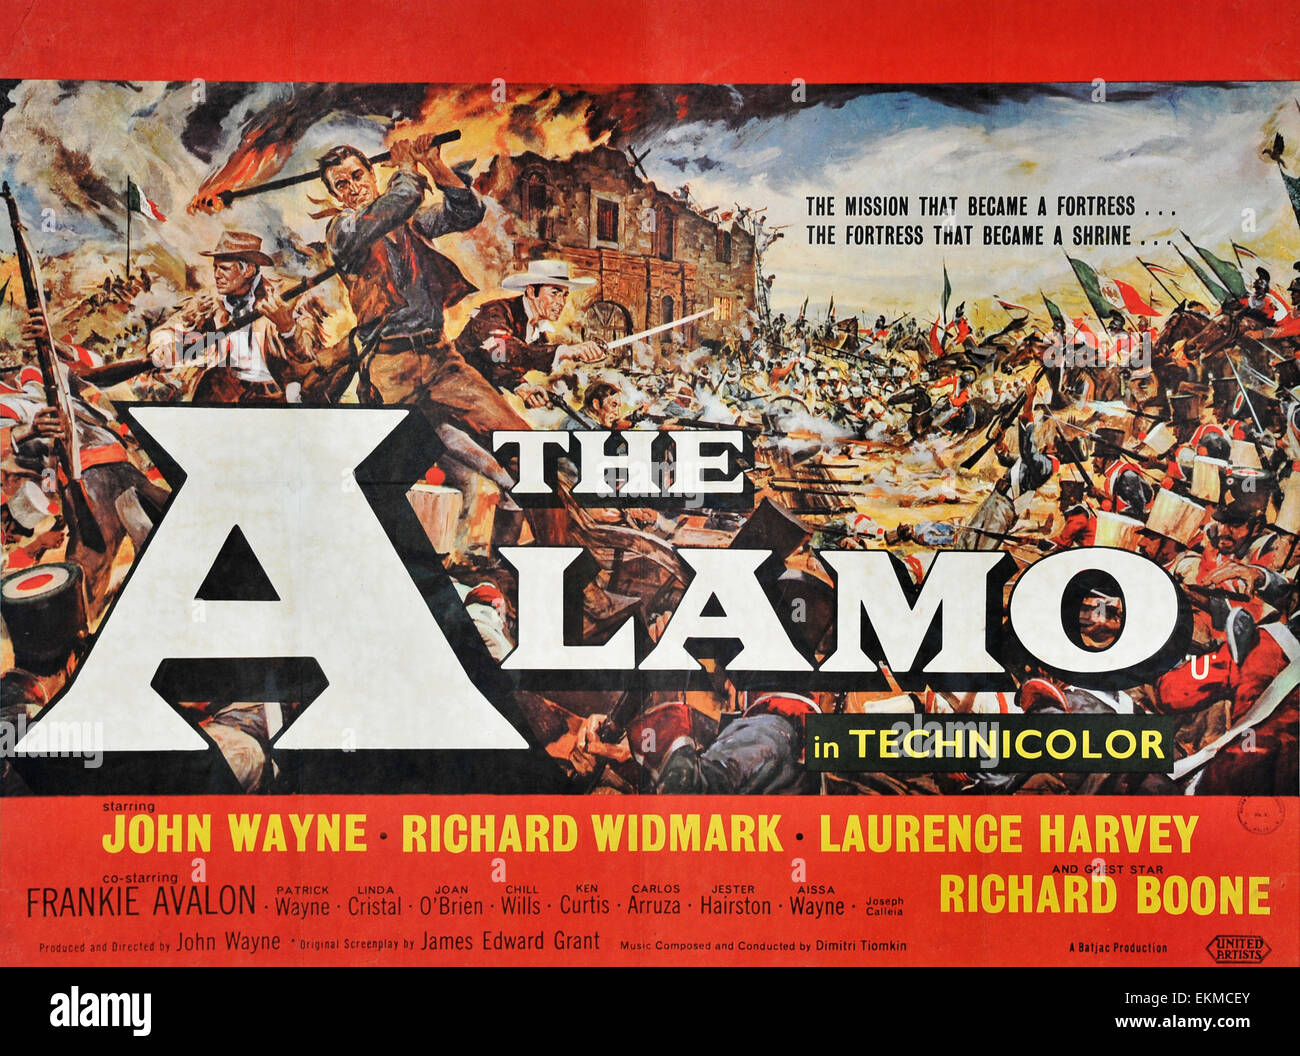 the alamo movie essays The alamo i chose to write about the alamo because i watched this movie when i was younger and wanted to watch it again now that i have a better perspective on the history that took place in the battle for the alamo.